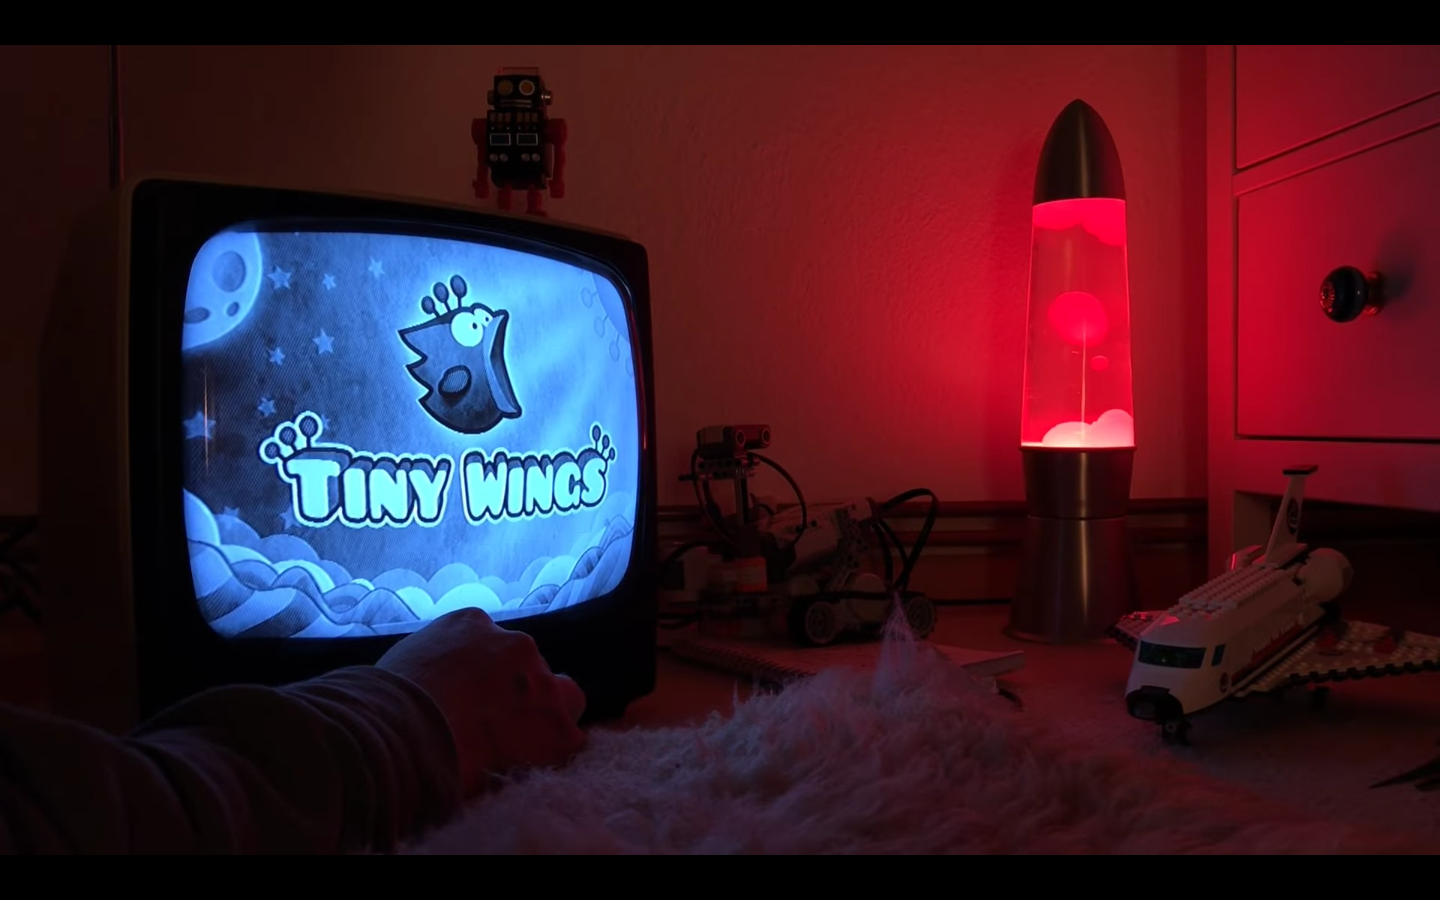 iPhone classic 'Tiny Wings' gets new levels and Apple TV app